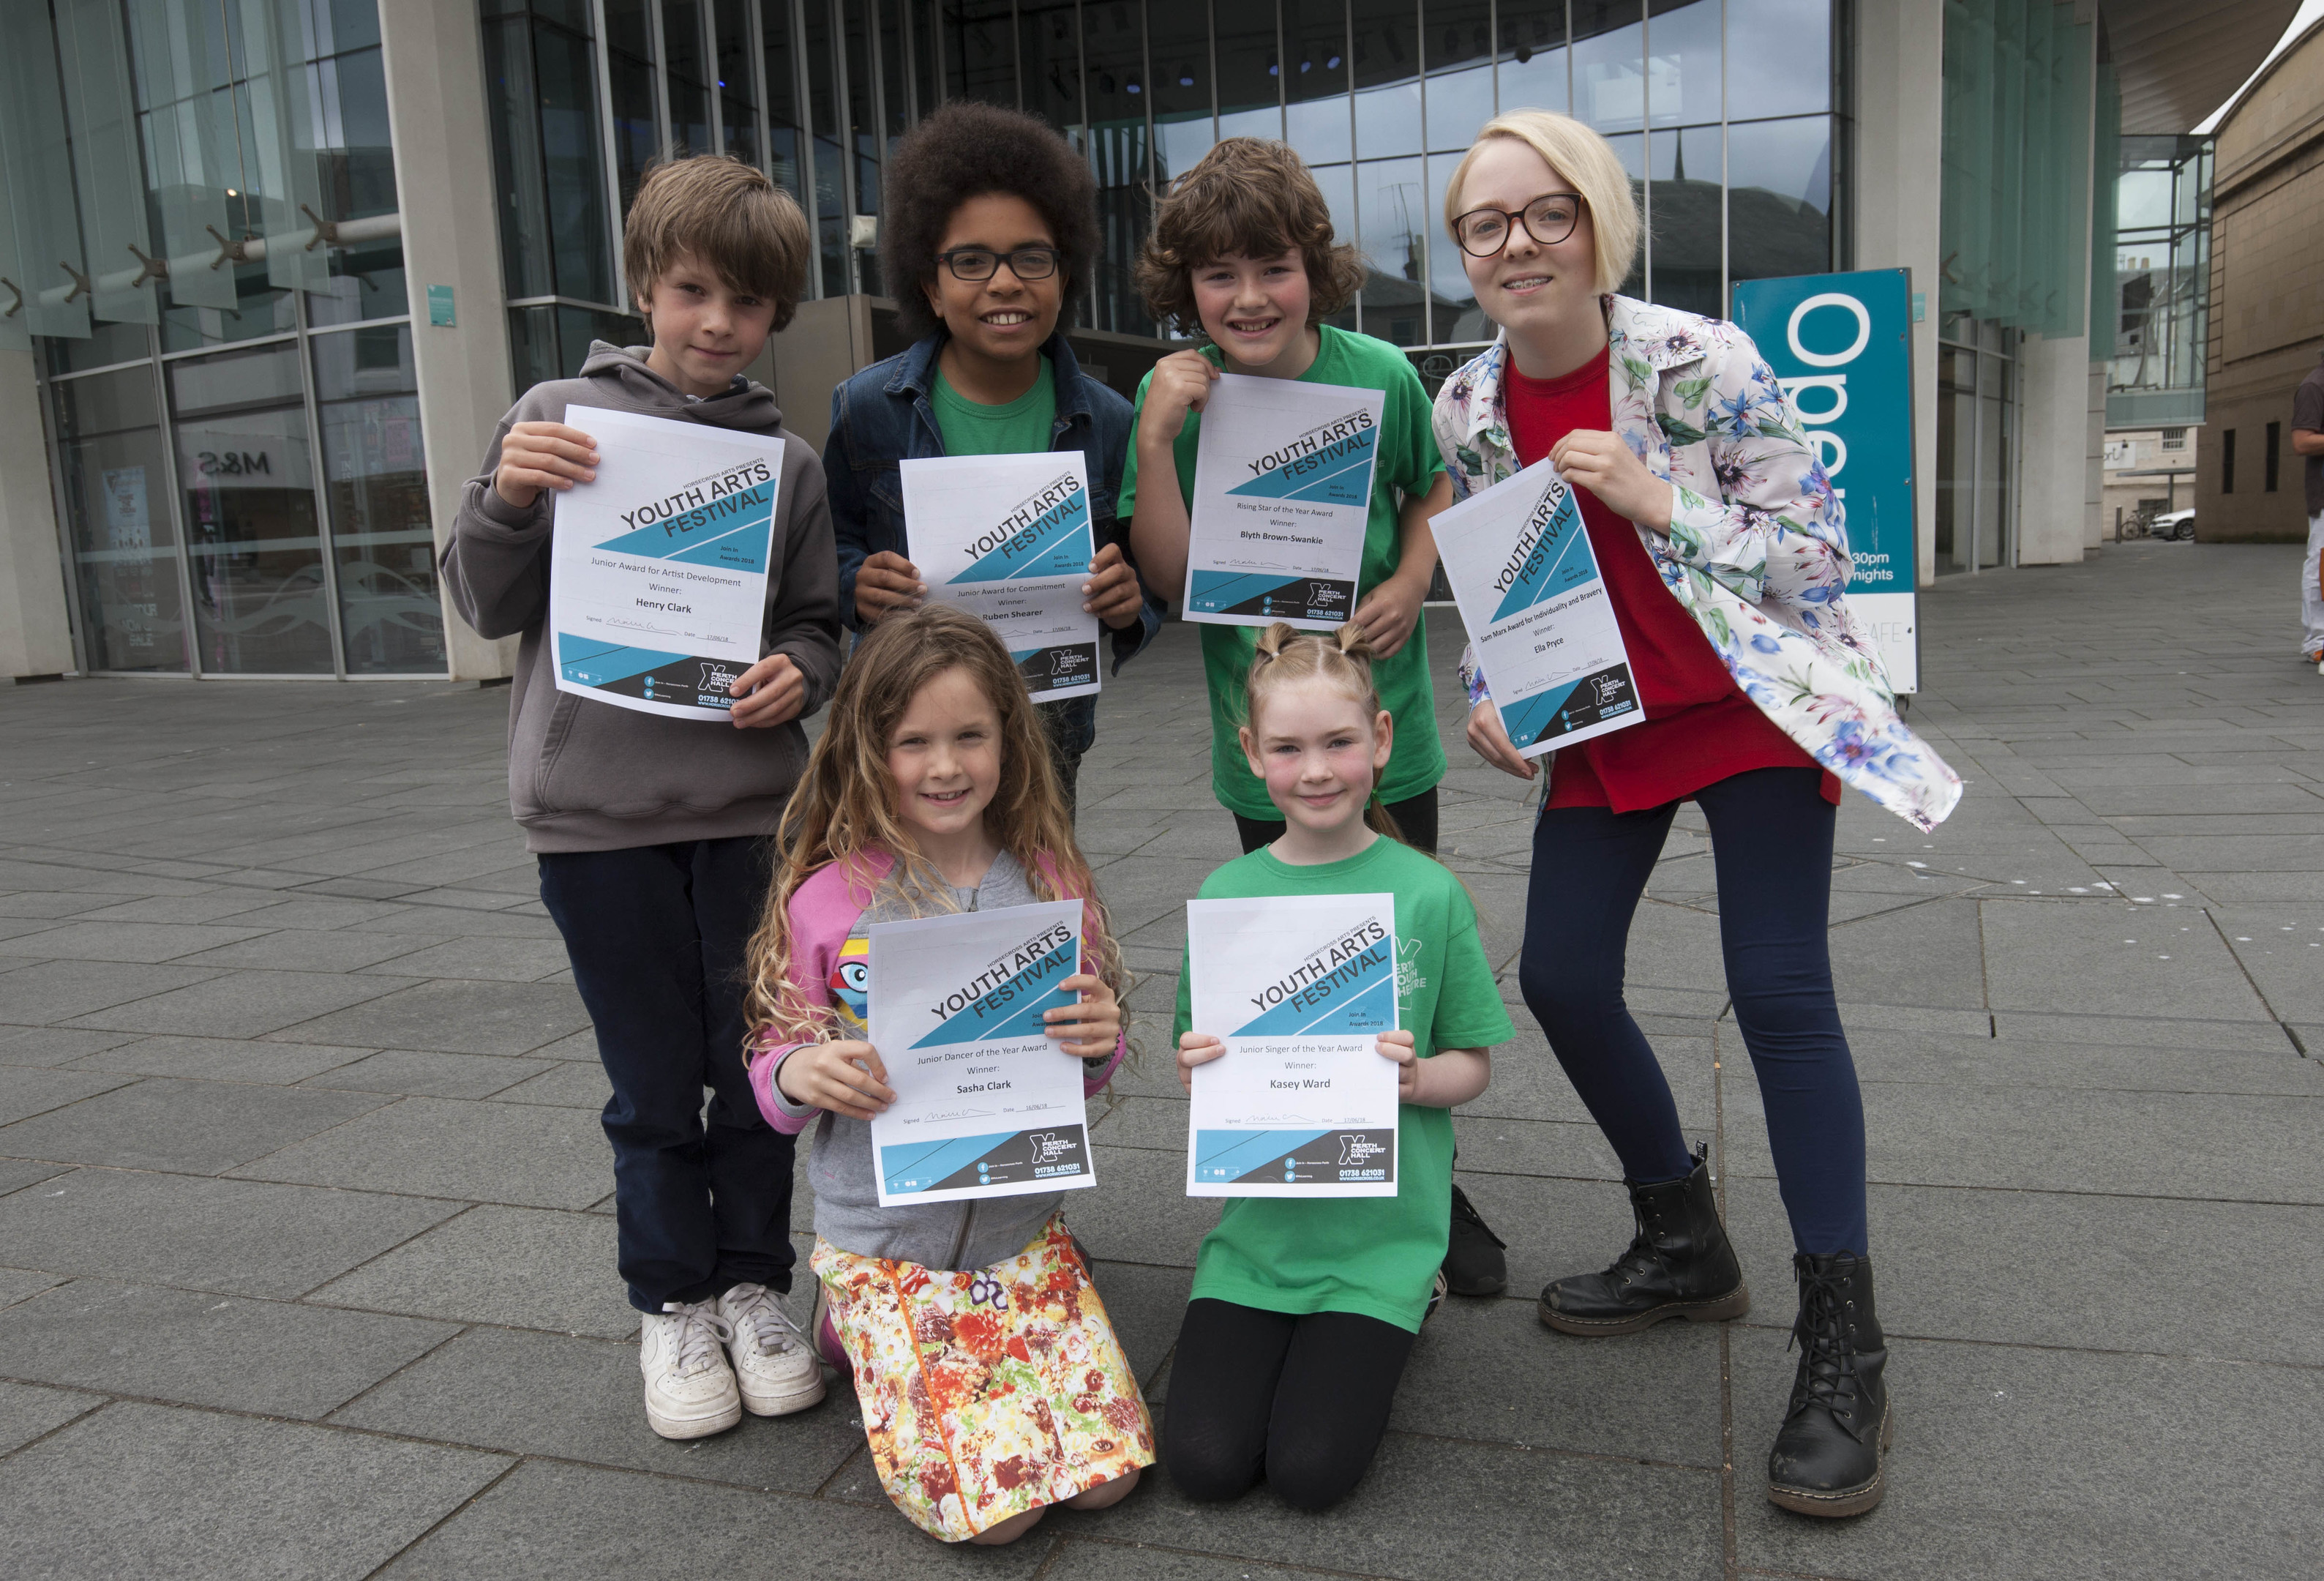 Award winners at Perth Concert Hall. Back from left: Sasha Clark, Ruben Shearer and Kasey Ward.  Front: Blyth Brown-Swankie and Ella Pryce.